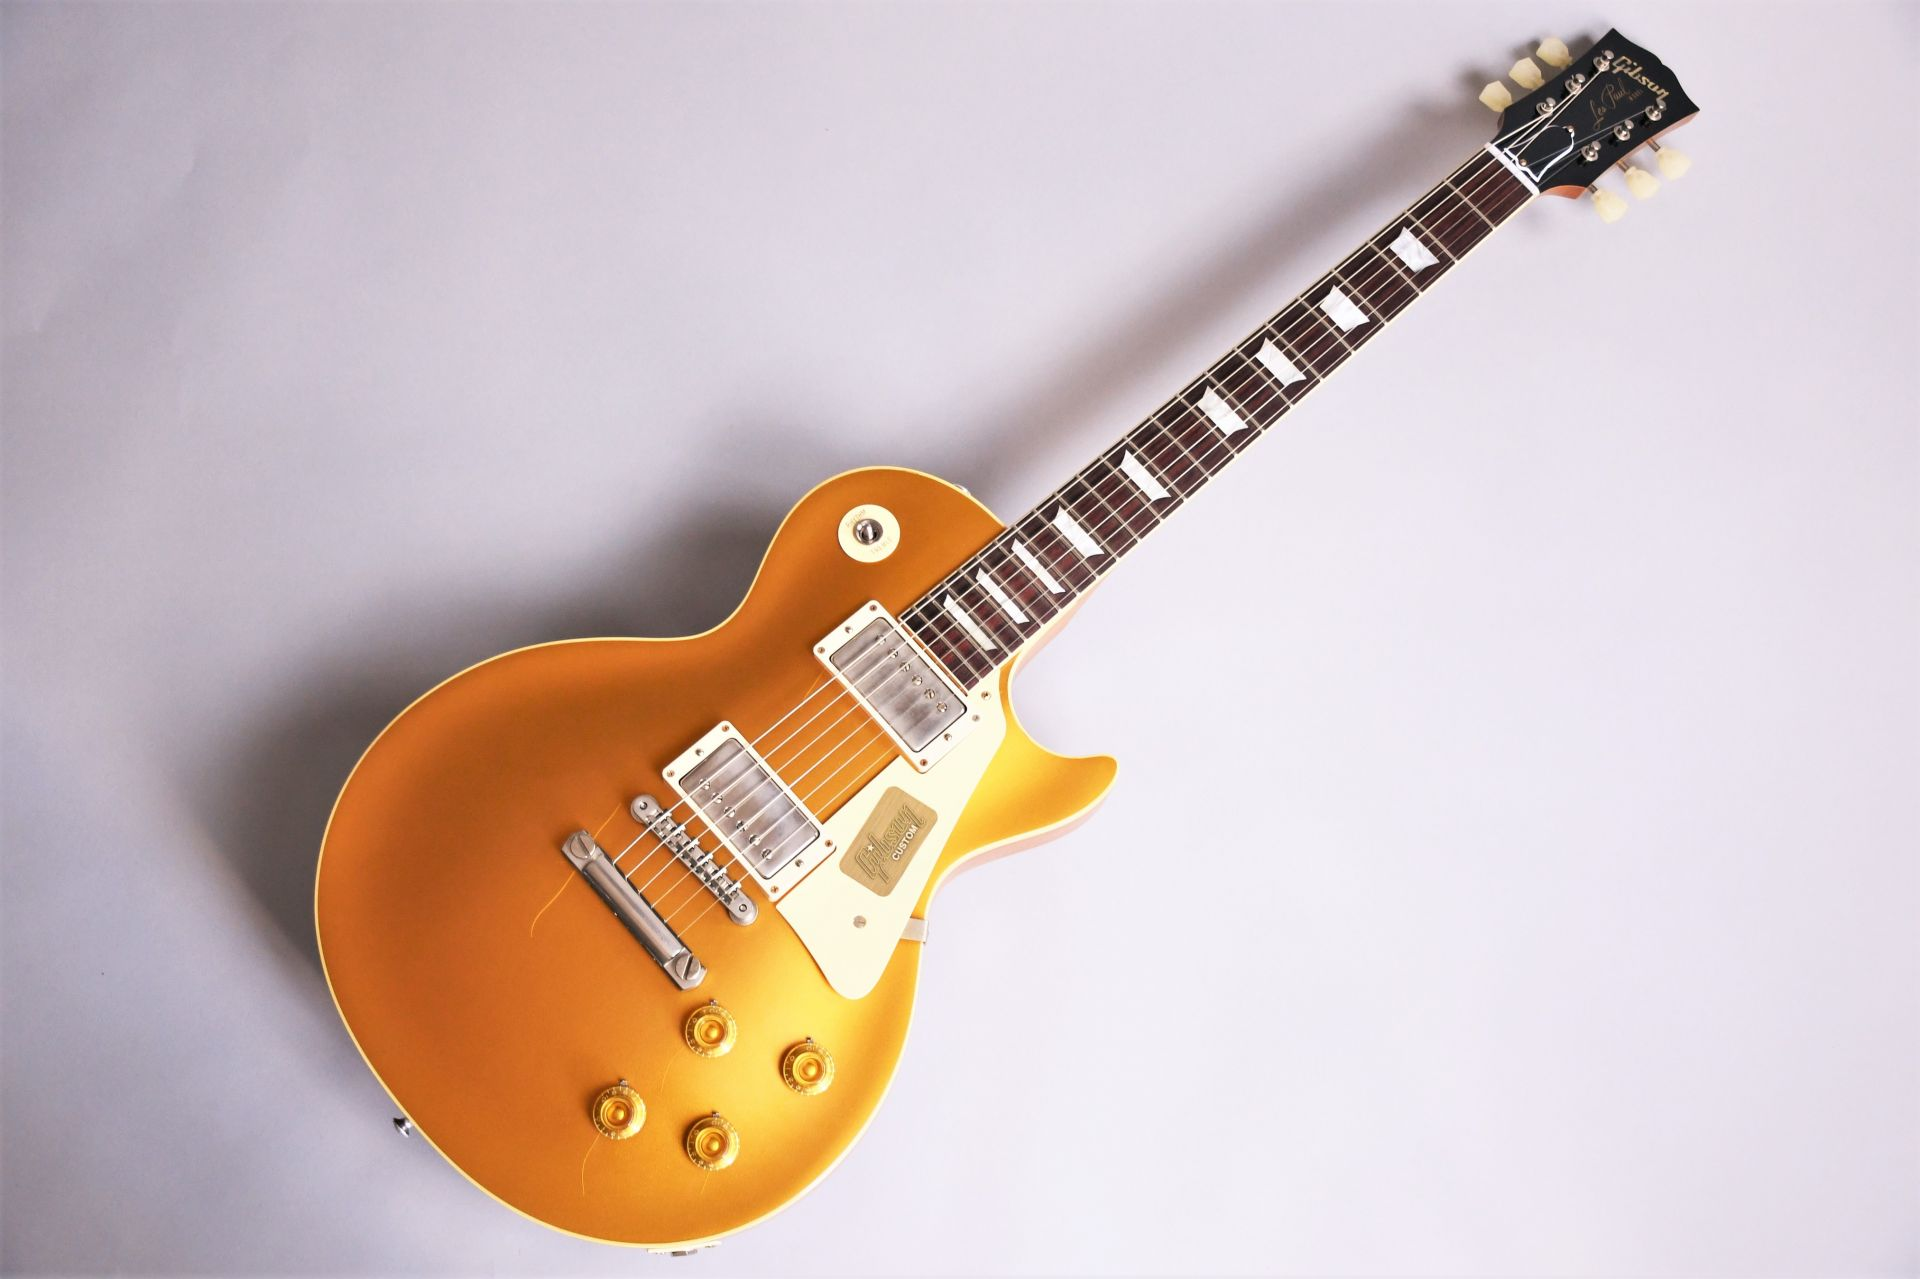 1957 Les Paul  Standard VOS 2017のボディトップ-アップ画像